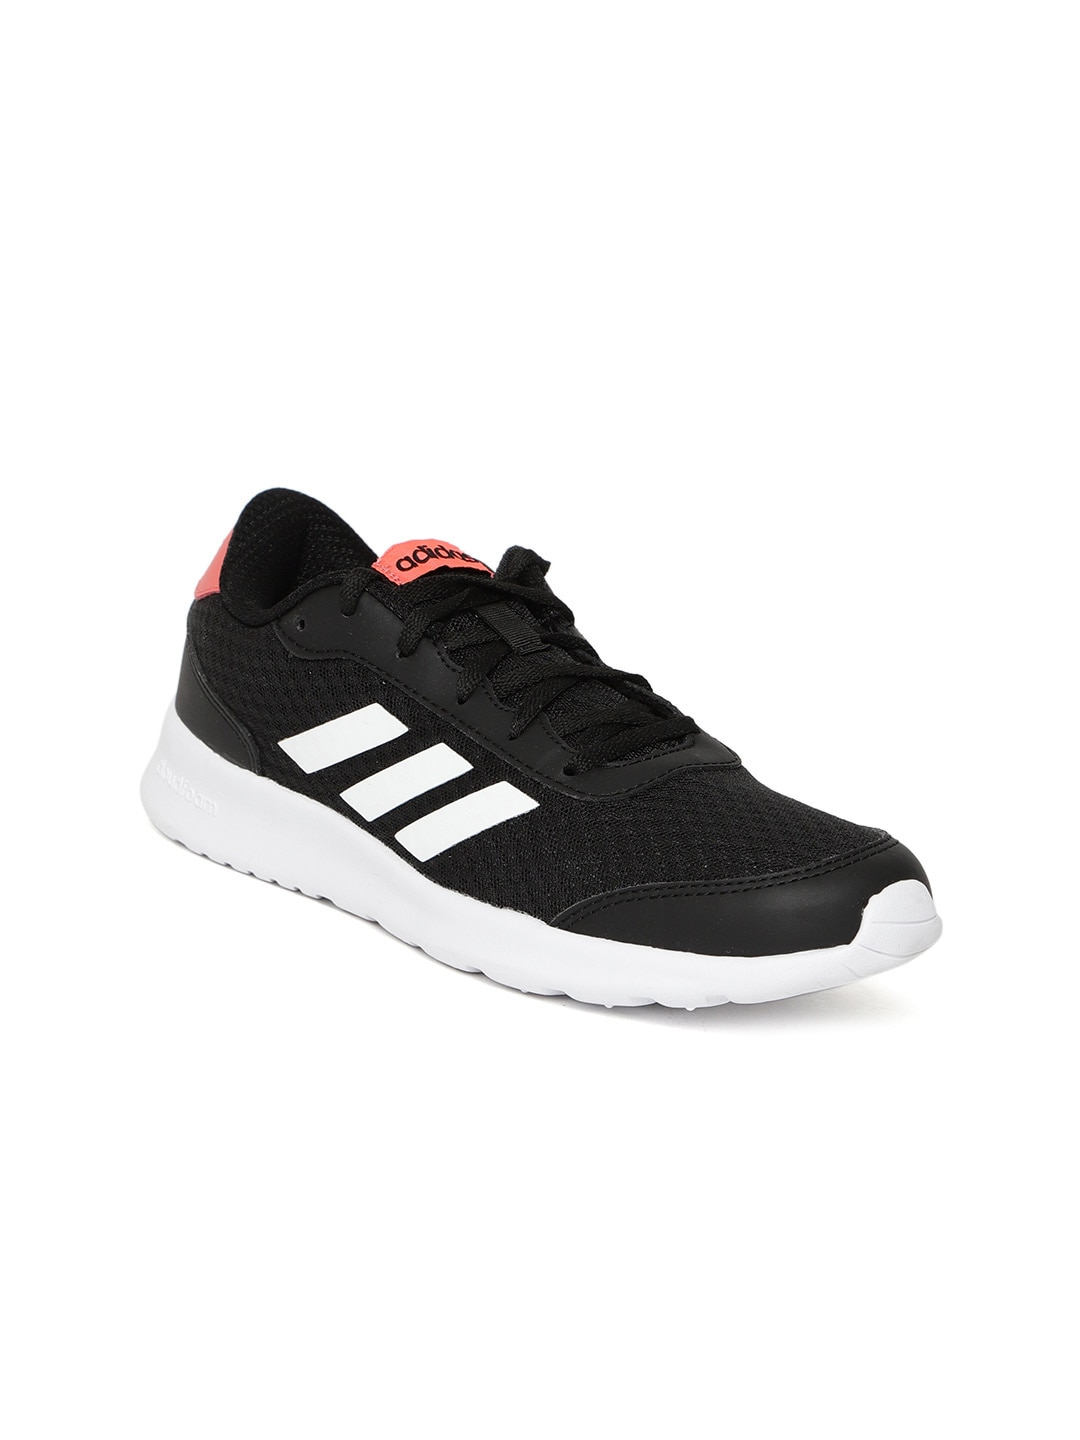 buy popular be637 9b9a3 Adidas Shoes - Buy Adidas Shoes for Men   Women Online - Myntra